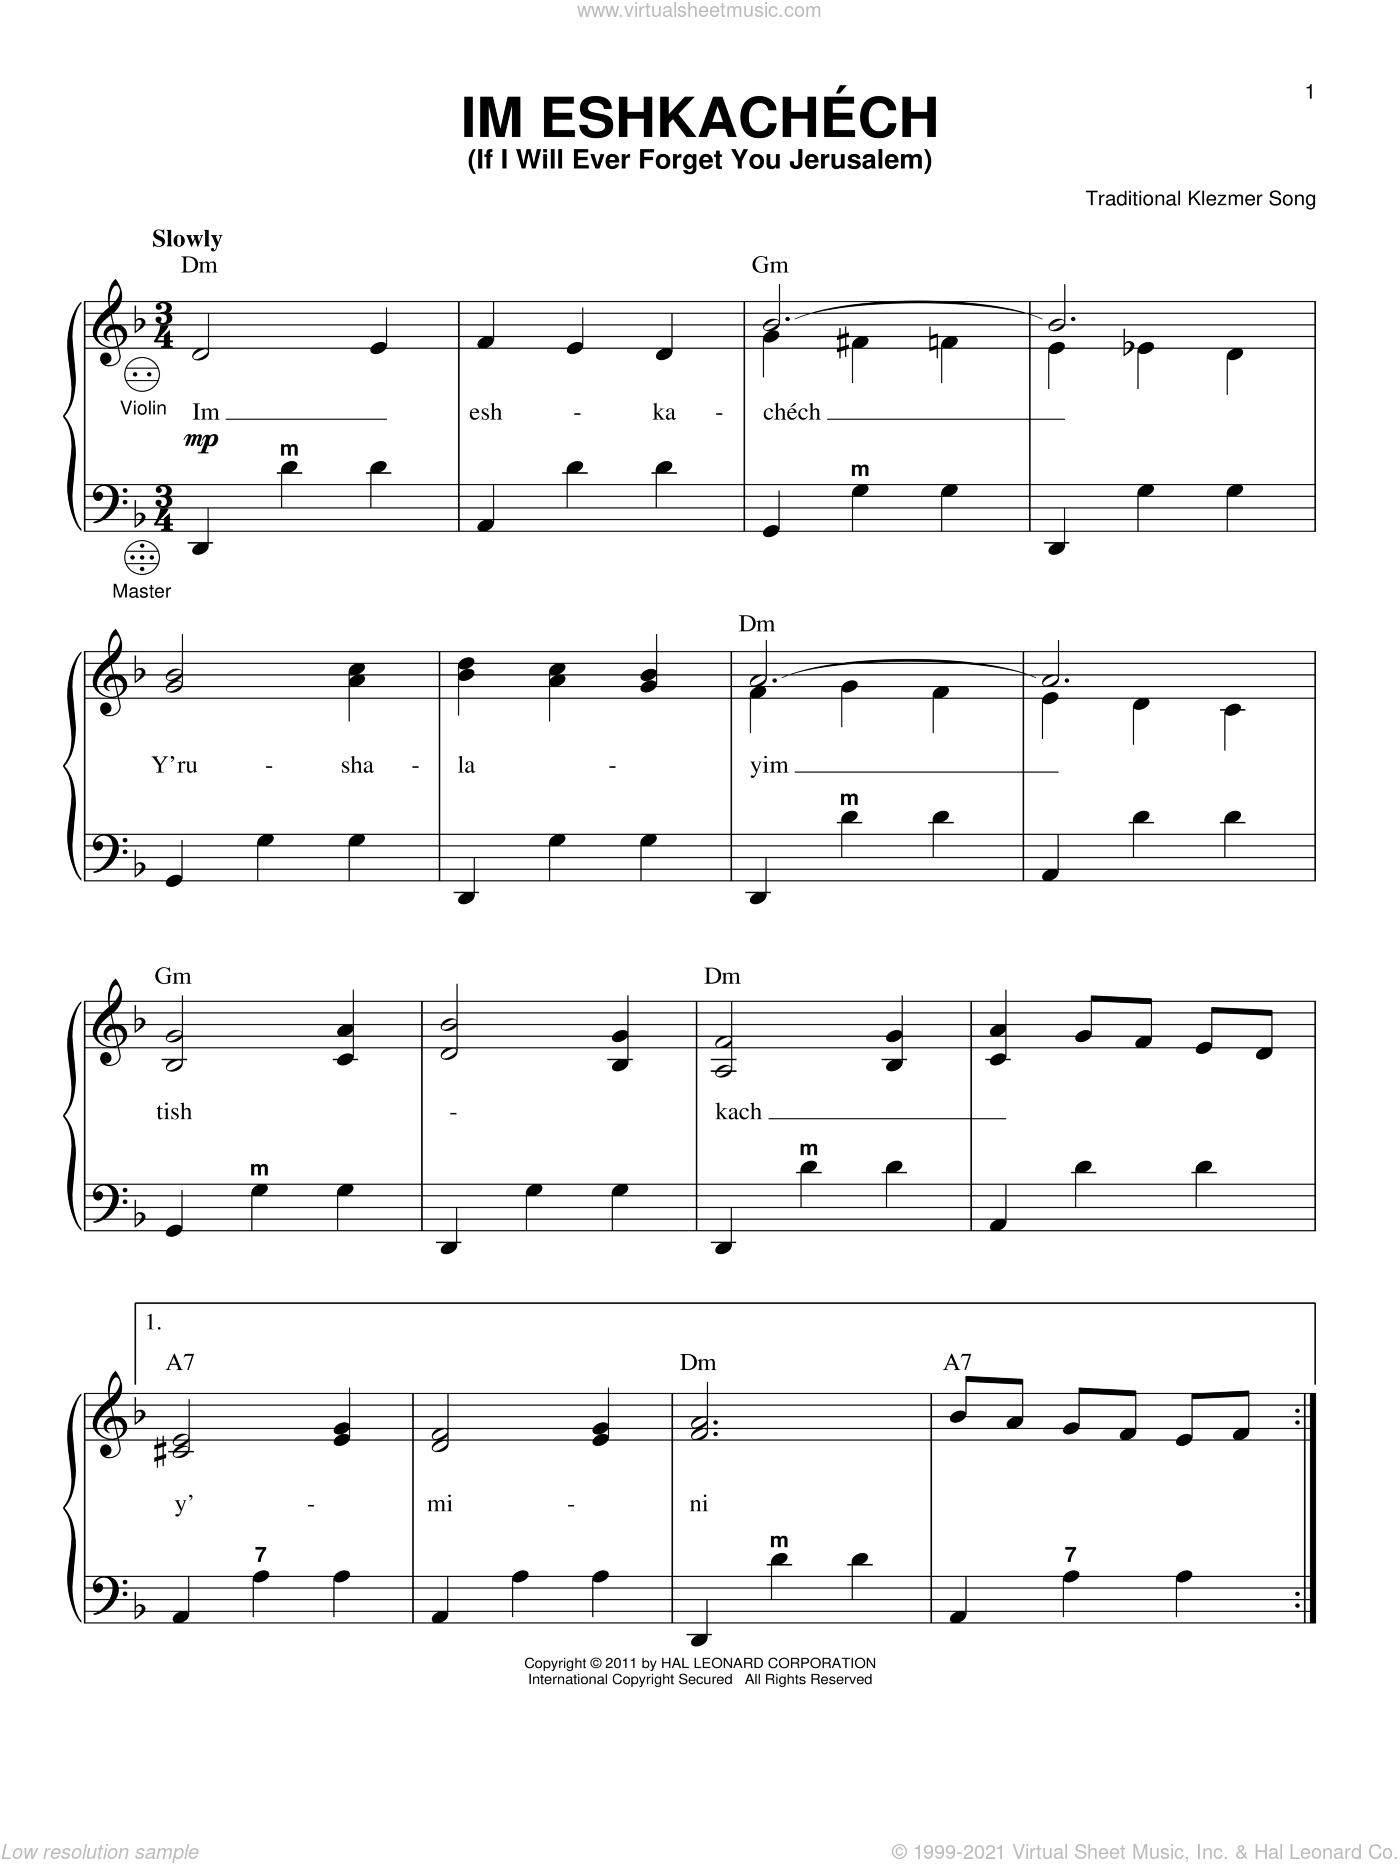 Im Eshkachech (If I Will Ever Forget You Jerusalem) sheet music for accordion by Traditional Klezmer Song